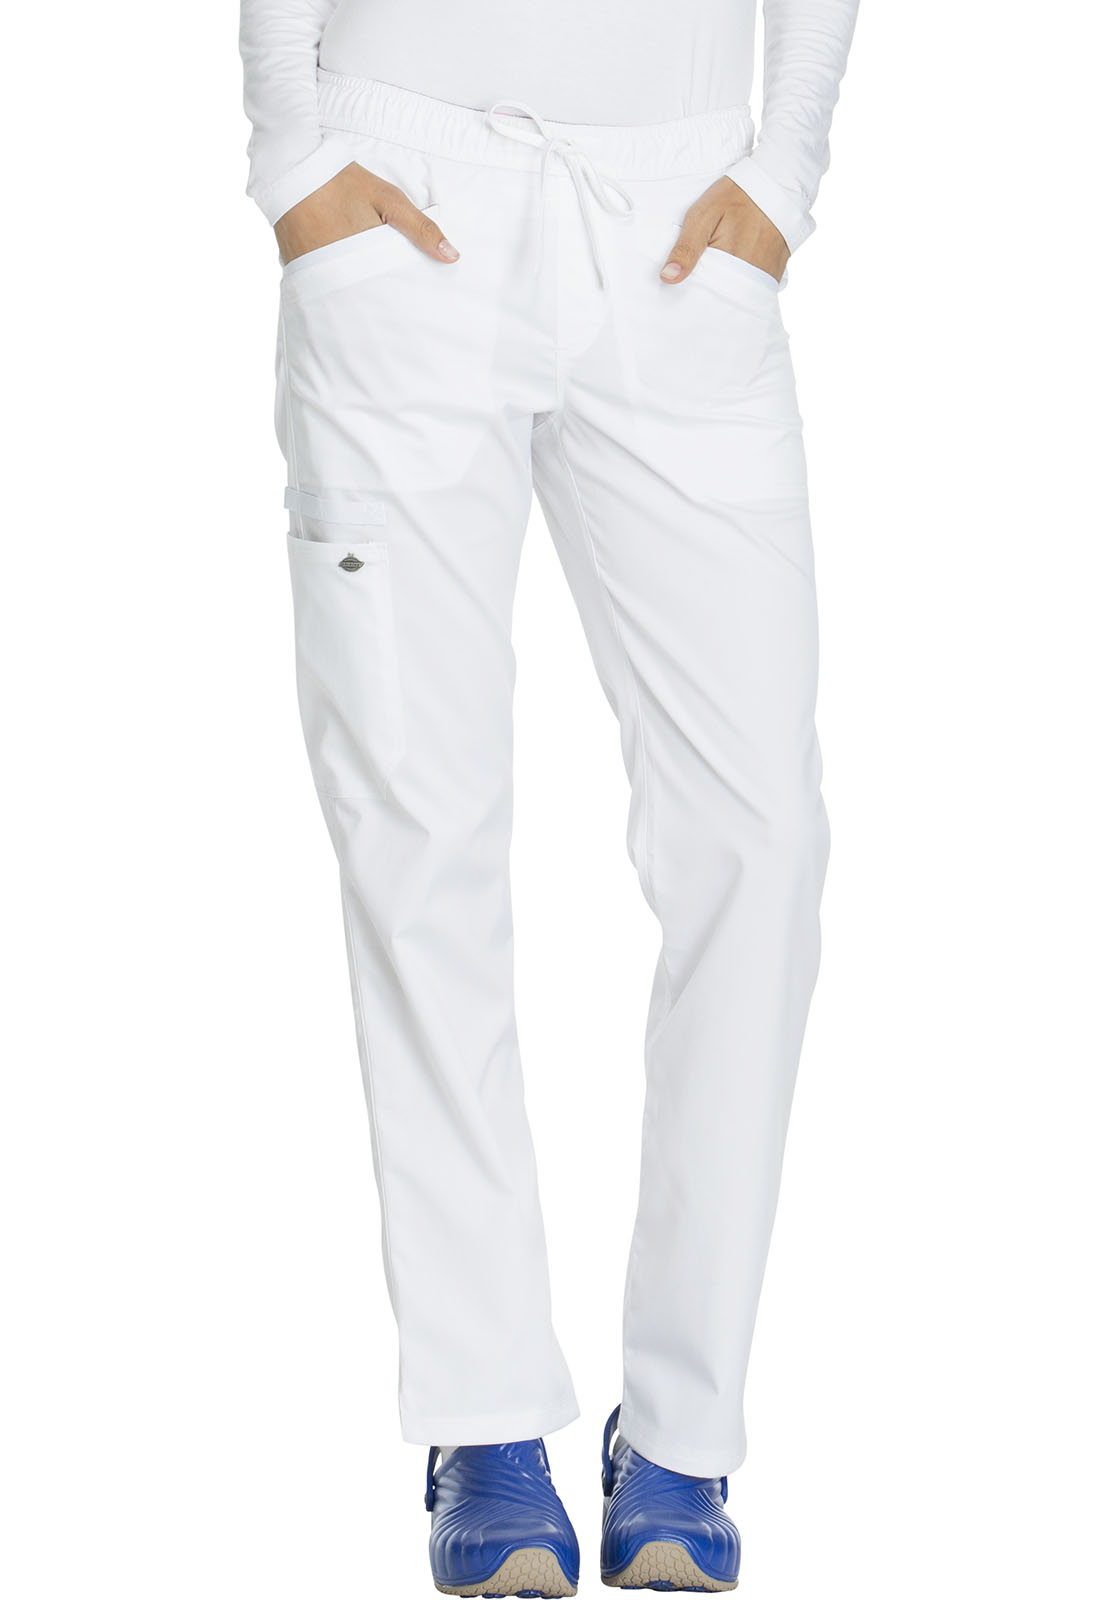 66567438fc2 Dickies Essence Mid Rise Straight Leg Drawstring Pant in White from ...